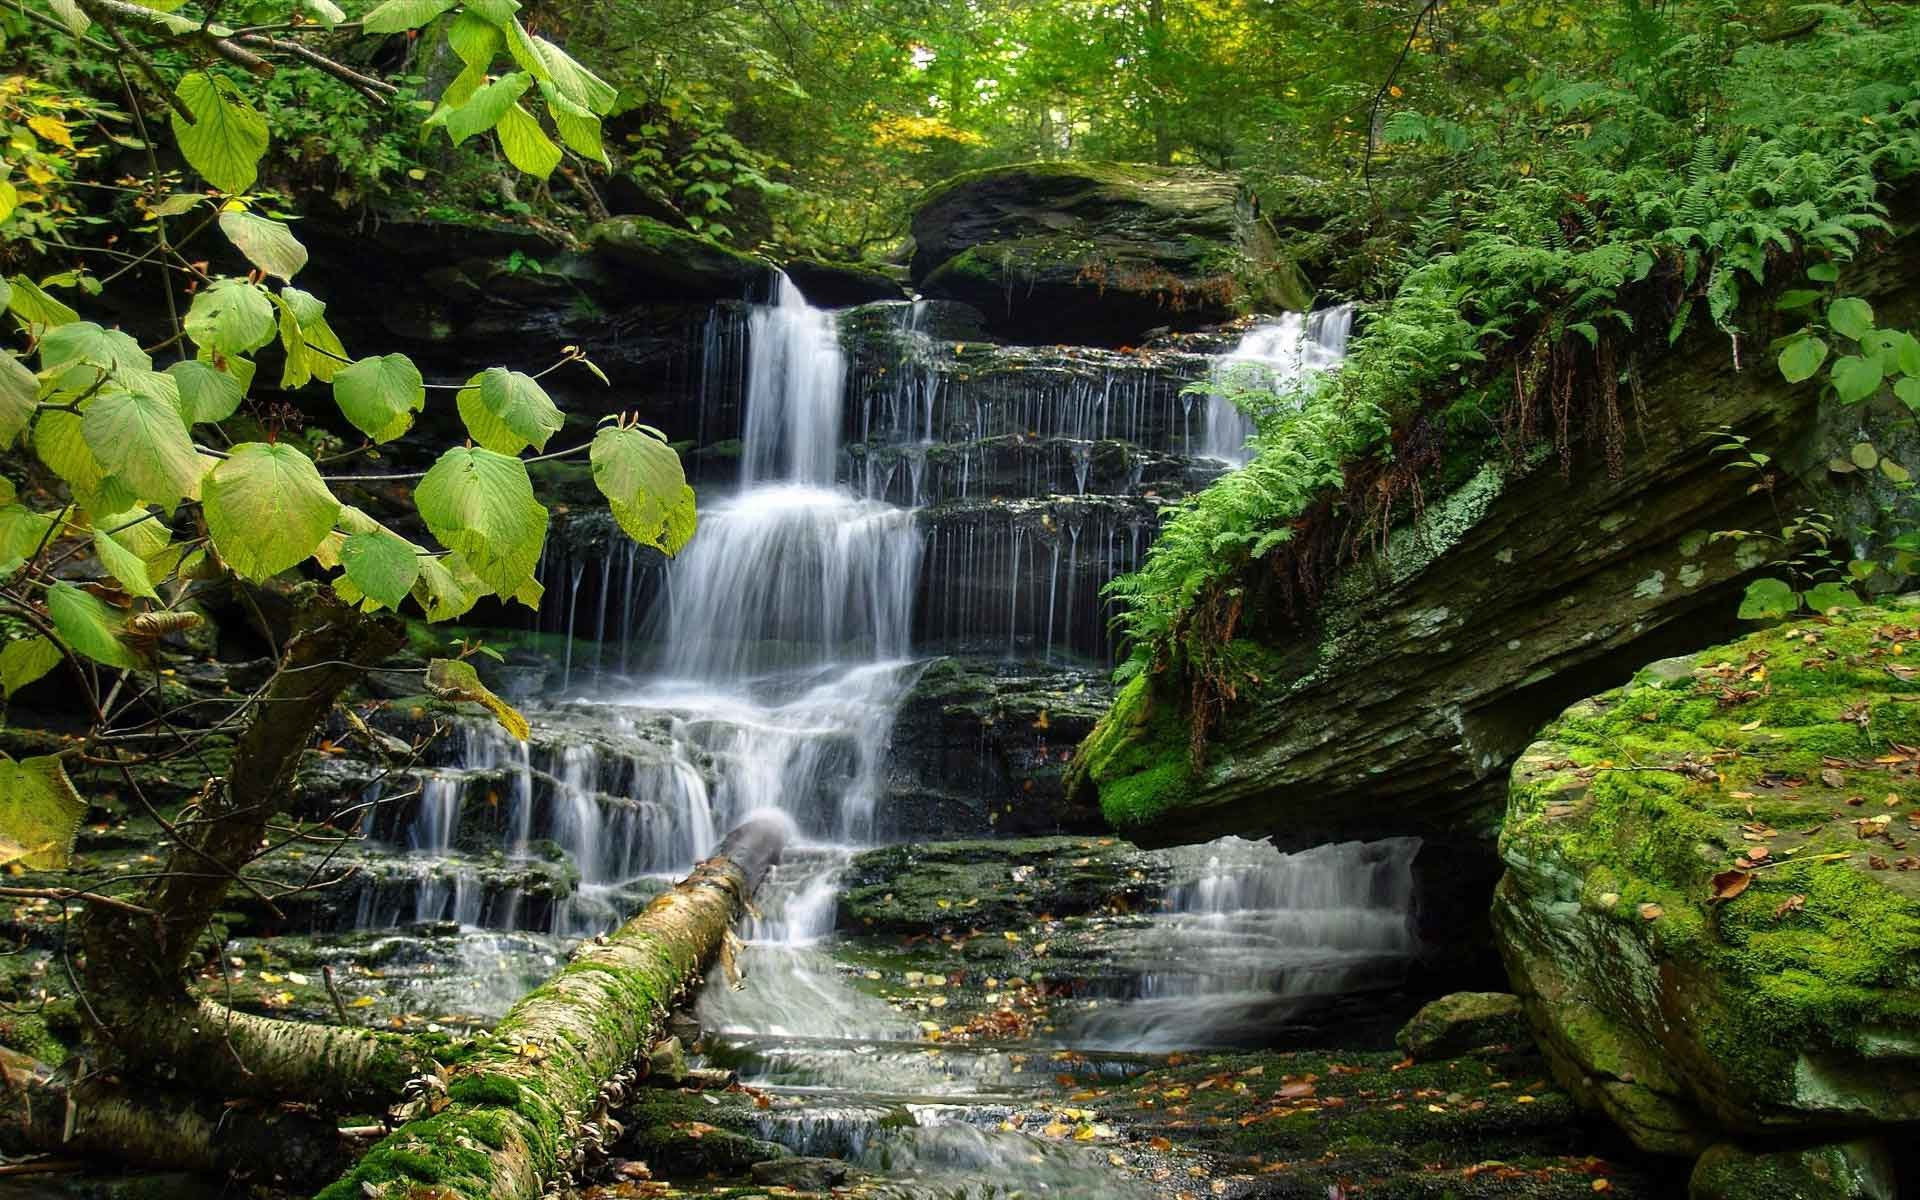 20 Gorgeous Hd Waterfall Wallpapers: Beautiful Waterfall Wallpaper (47+ Pictures